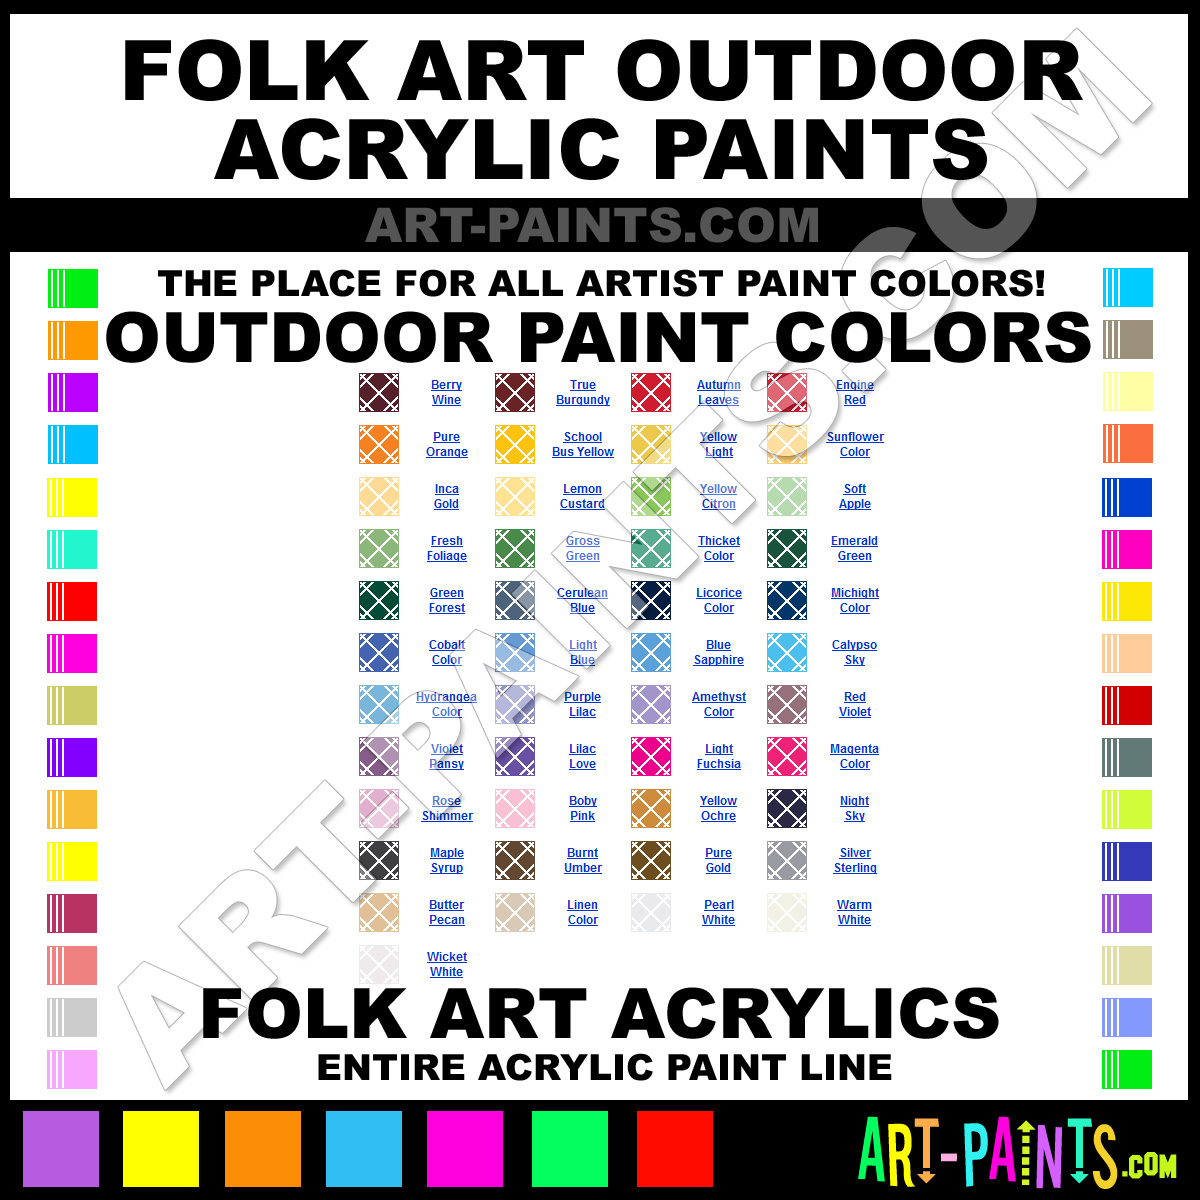 Folk art acrylic paint color chart - Night Sky Paint 1636 By Folk Art Outdoor Paints